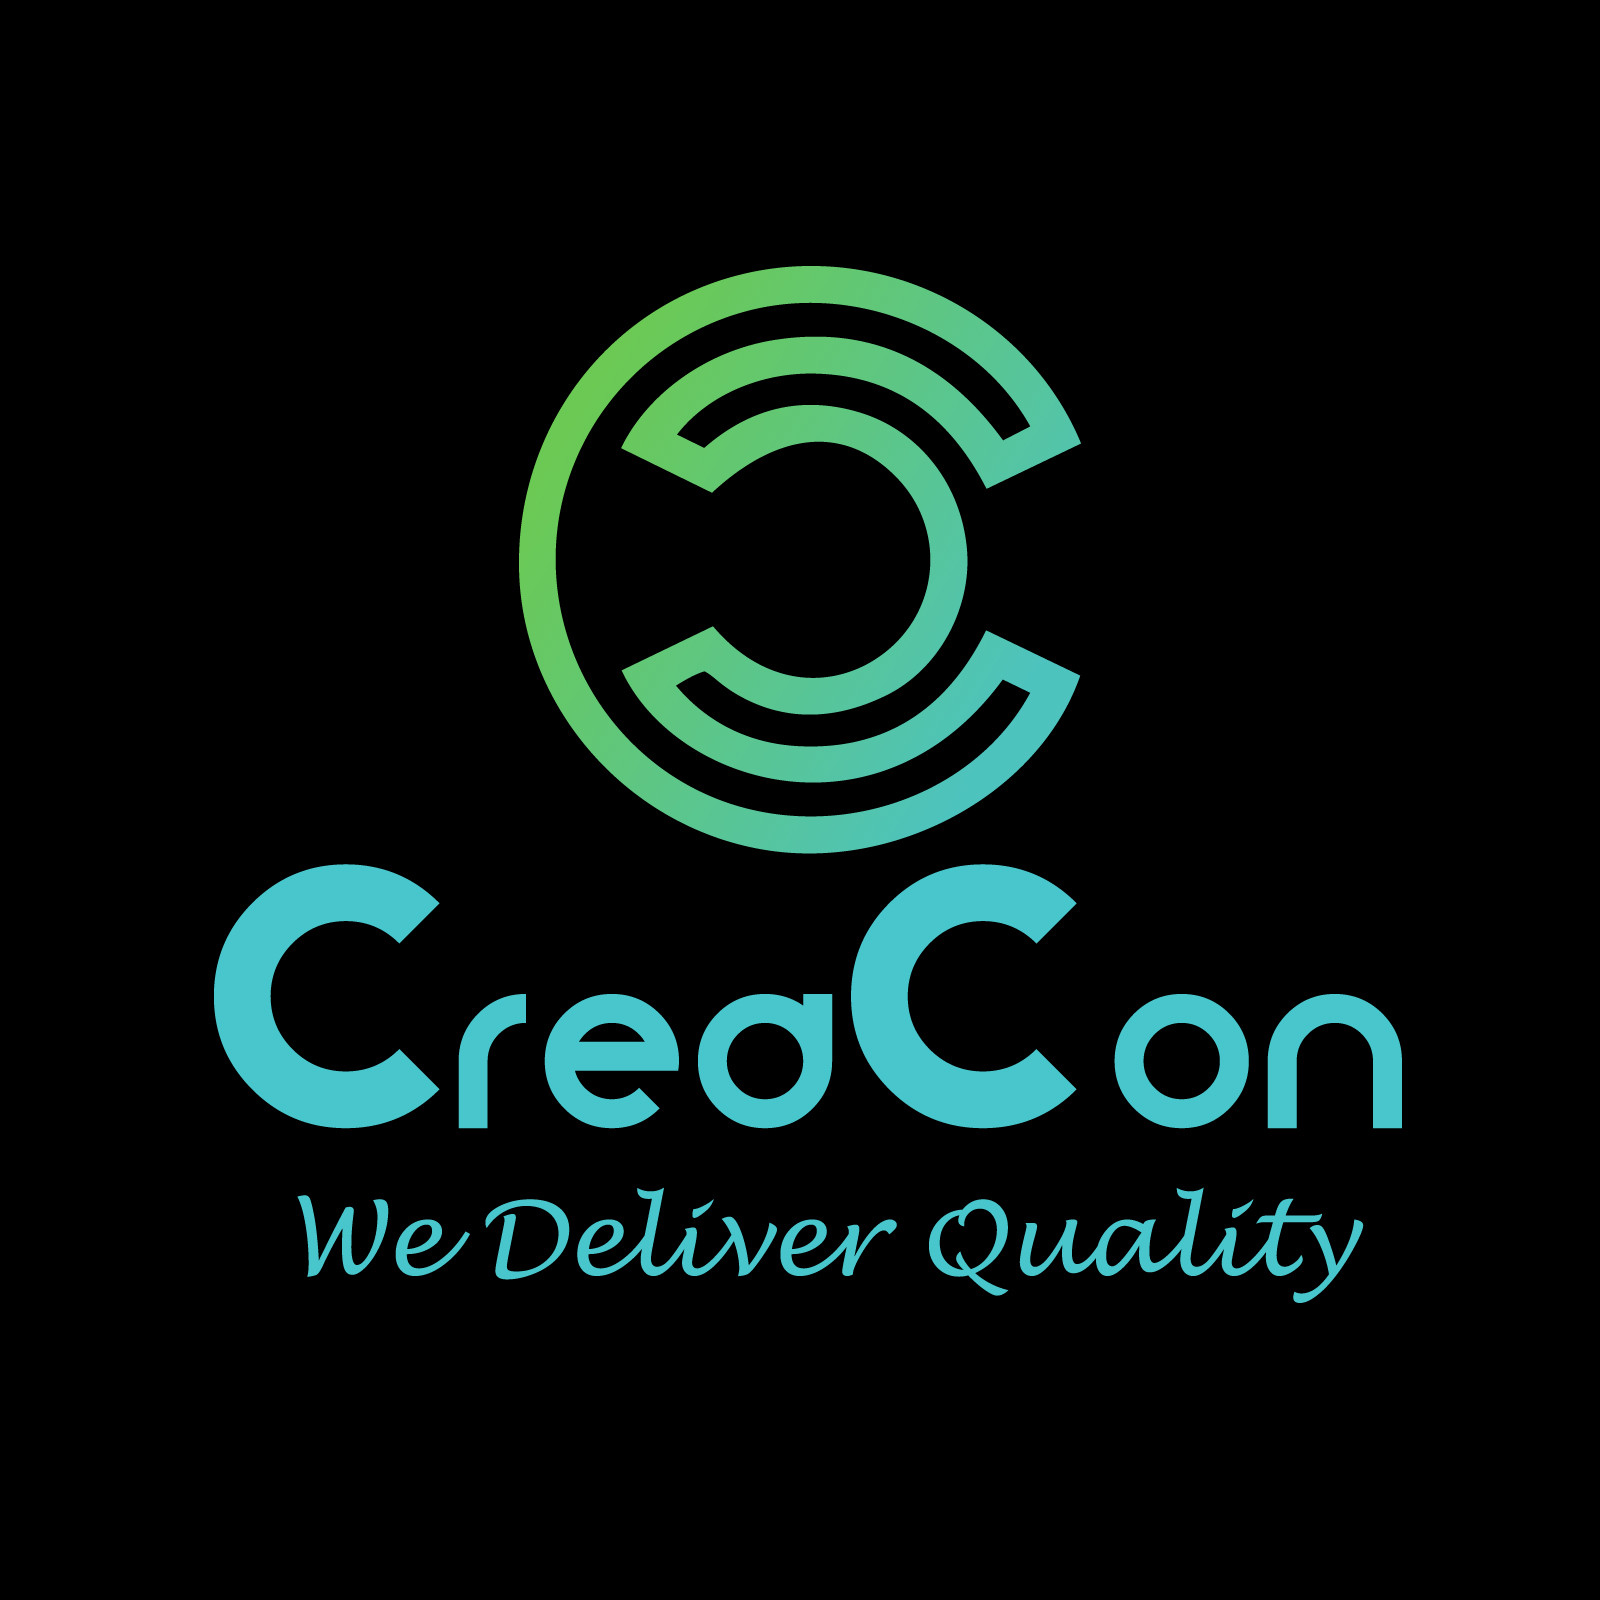 creaconsolutions's profile picture